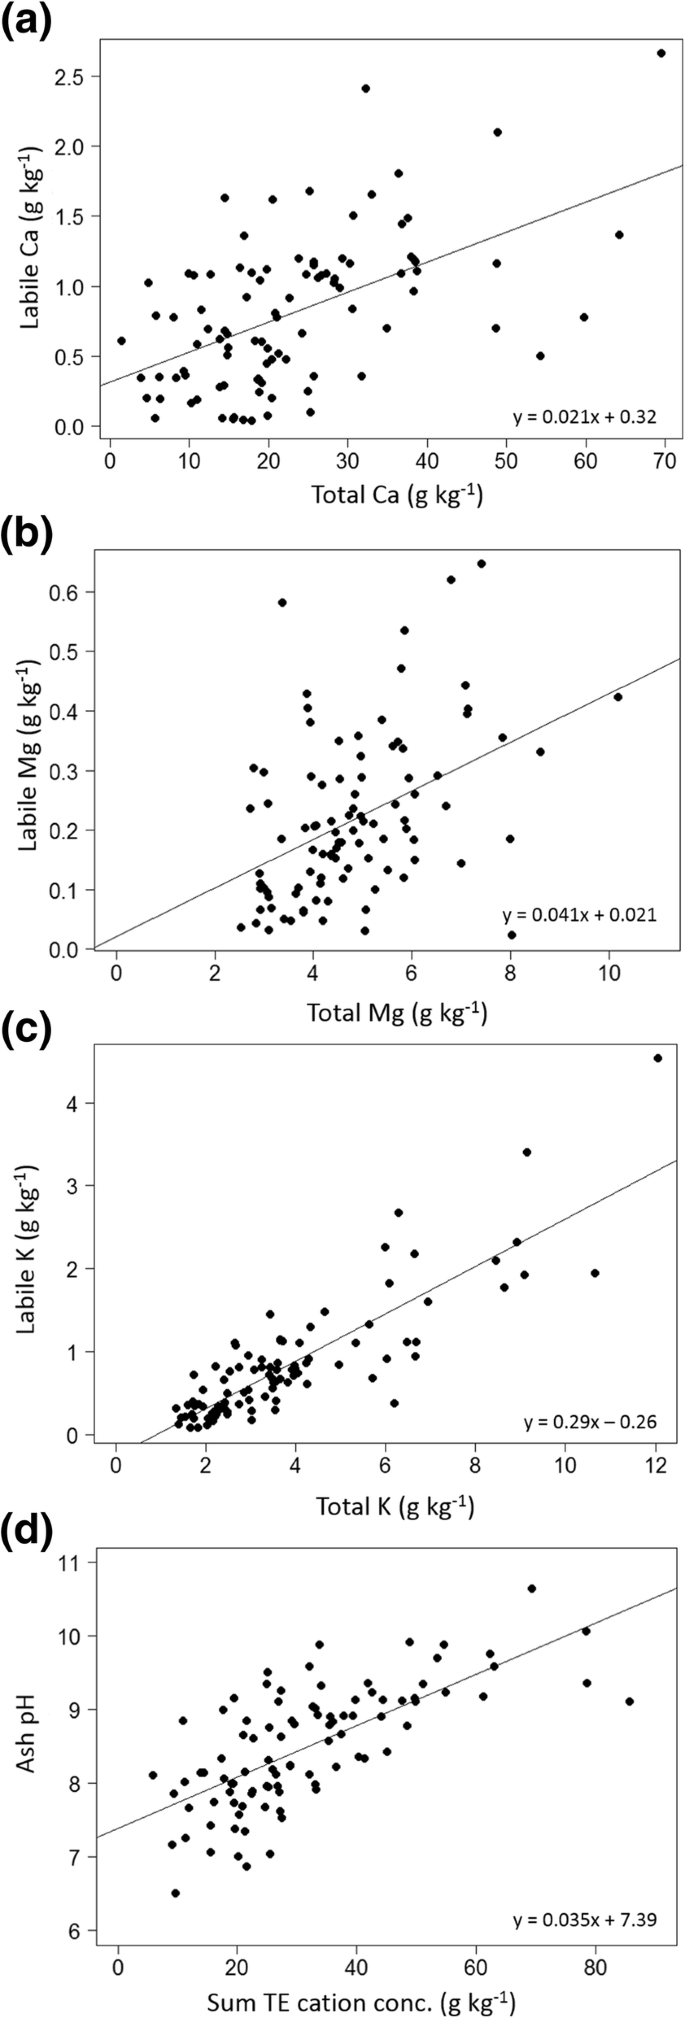 Fuels, vegetation, and prescribed fire dynamics influence